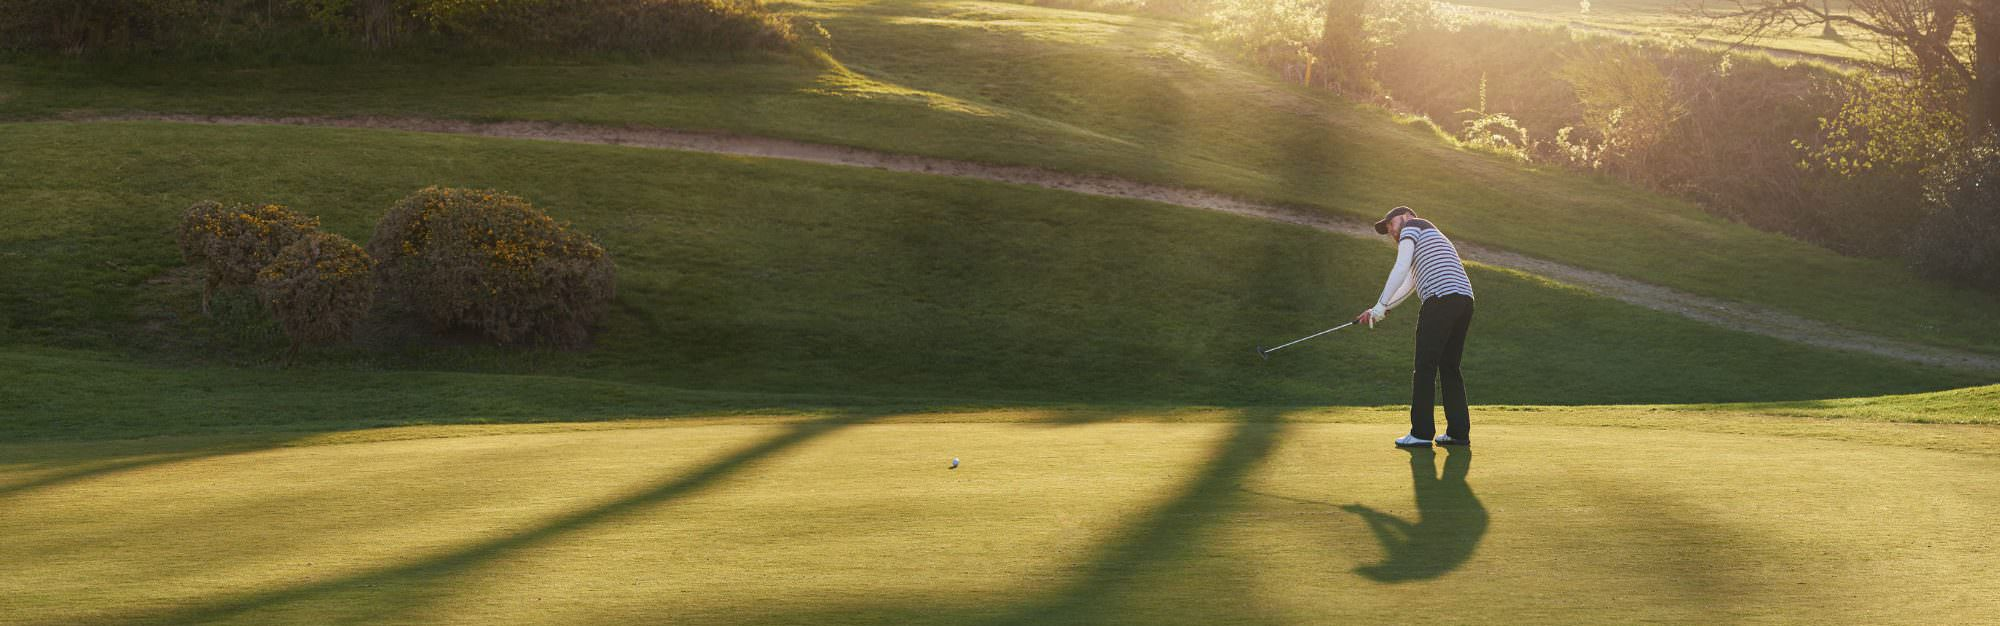 Should these petitioners be able to walk all over YOUR golf course?